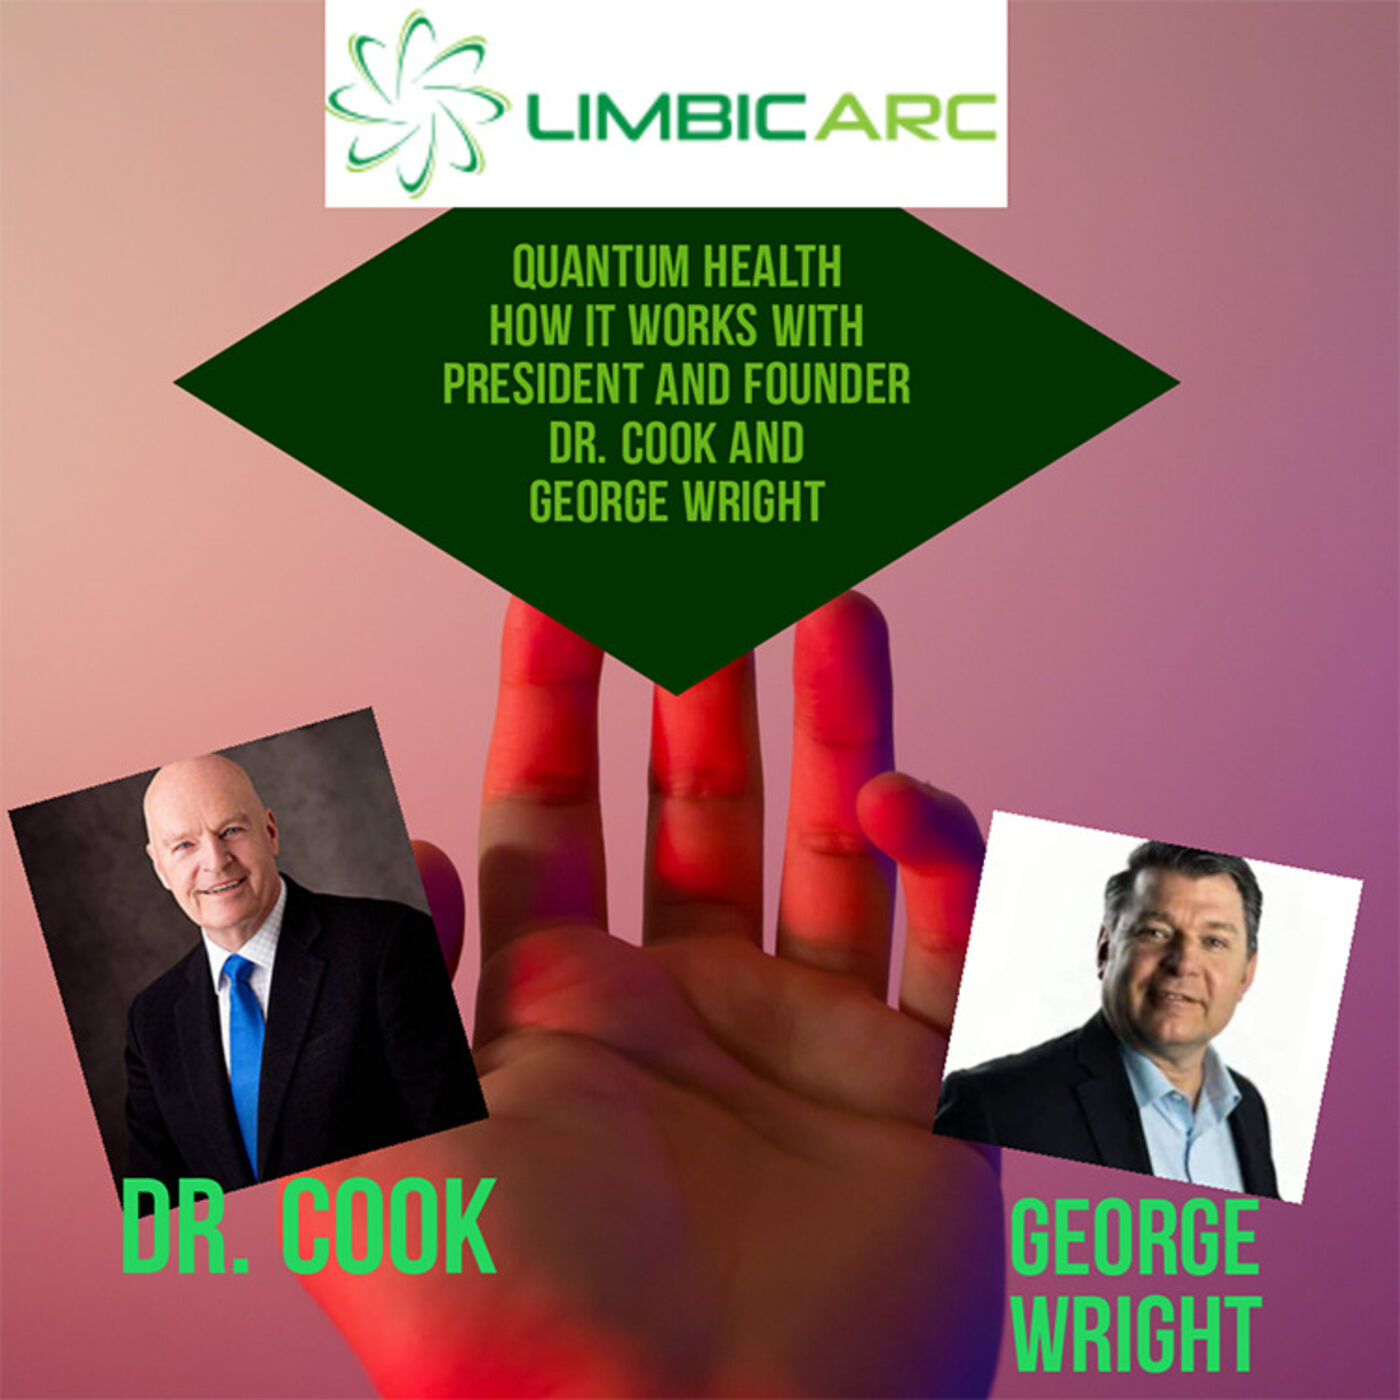 LIFT Your Story with Dr. Cook, George Wright and Jamel Sherman on Limbic Arc The New Quantum Health